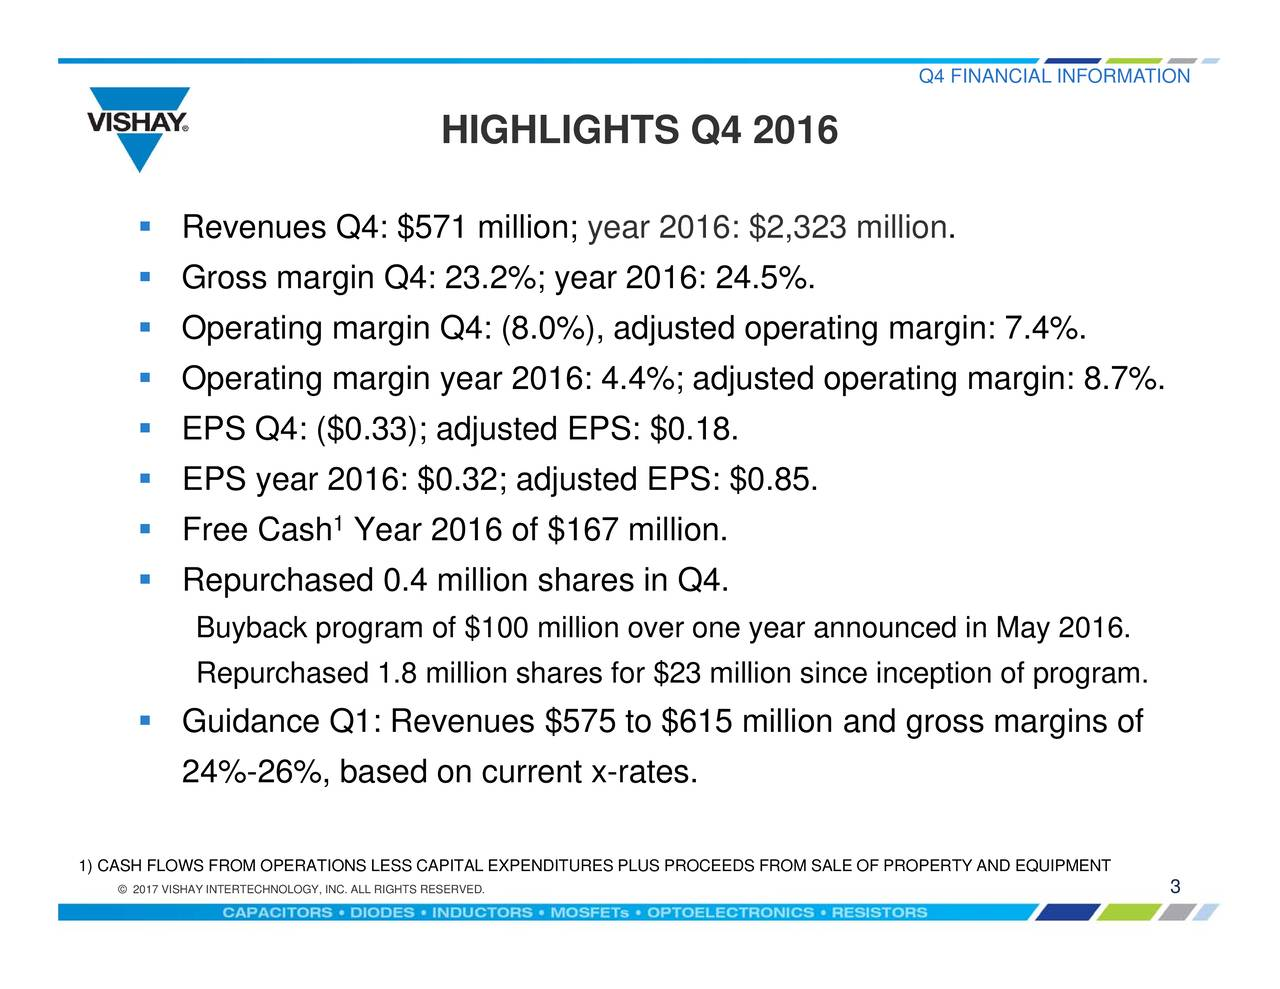 . Q4 FINANCIAL INFORMATION S FROM SALE OF PROPERTY AND EQUIPMENT year 2016: $2,323 million HIGHLIGHTS Q4 2016 Year 2016 of $167 million. 1 IINC. ALL RIGHTS RESERVED.URES PLUS PROCEED Buybecpuchasram1.fm1lionslanre Revenues Q4: $571 million;3;(8.r2j)16:j24t5;:$0ur8.idgope Q4. 2017VISHAYINTERTECHNOLOGY, 1) CASH FLOWS FROM OPERAT